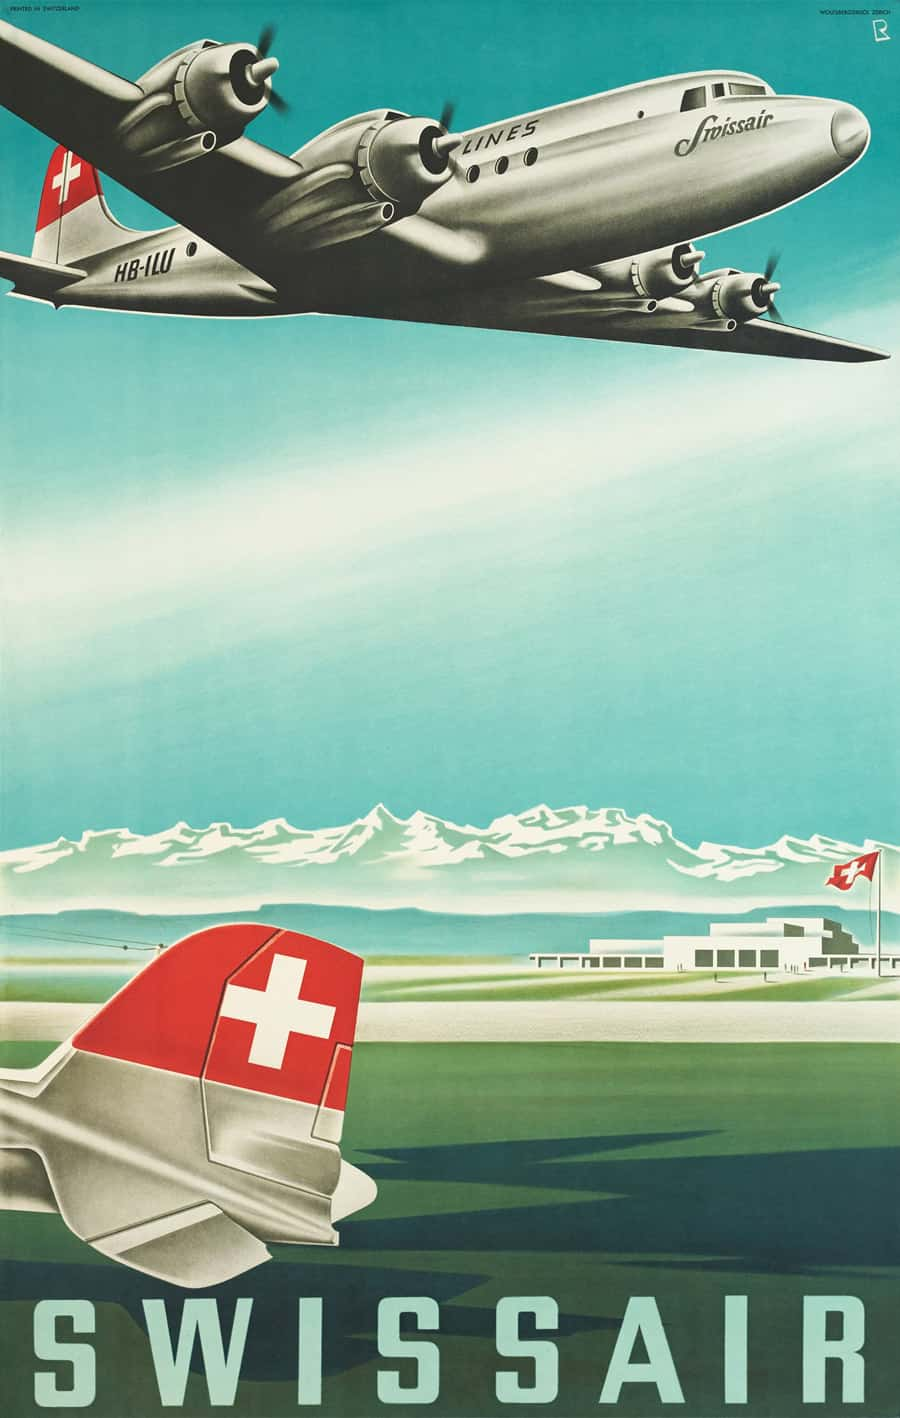 Original Vintage Swissair Poster Designs from Galerie123